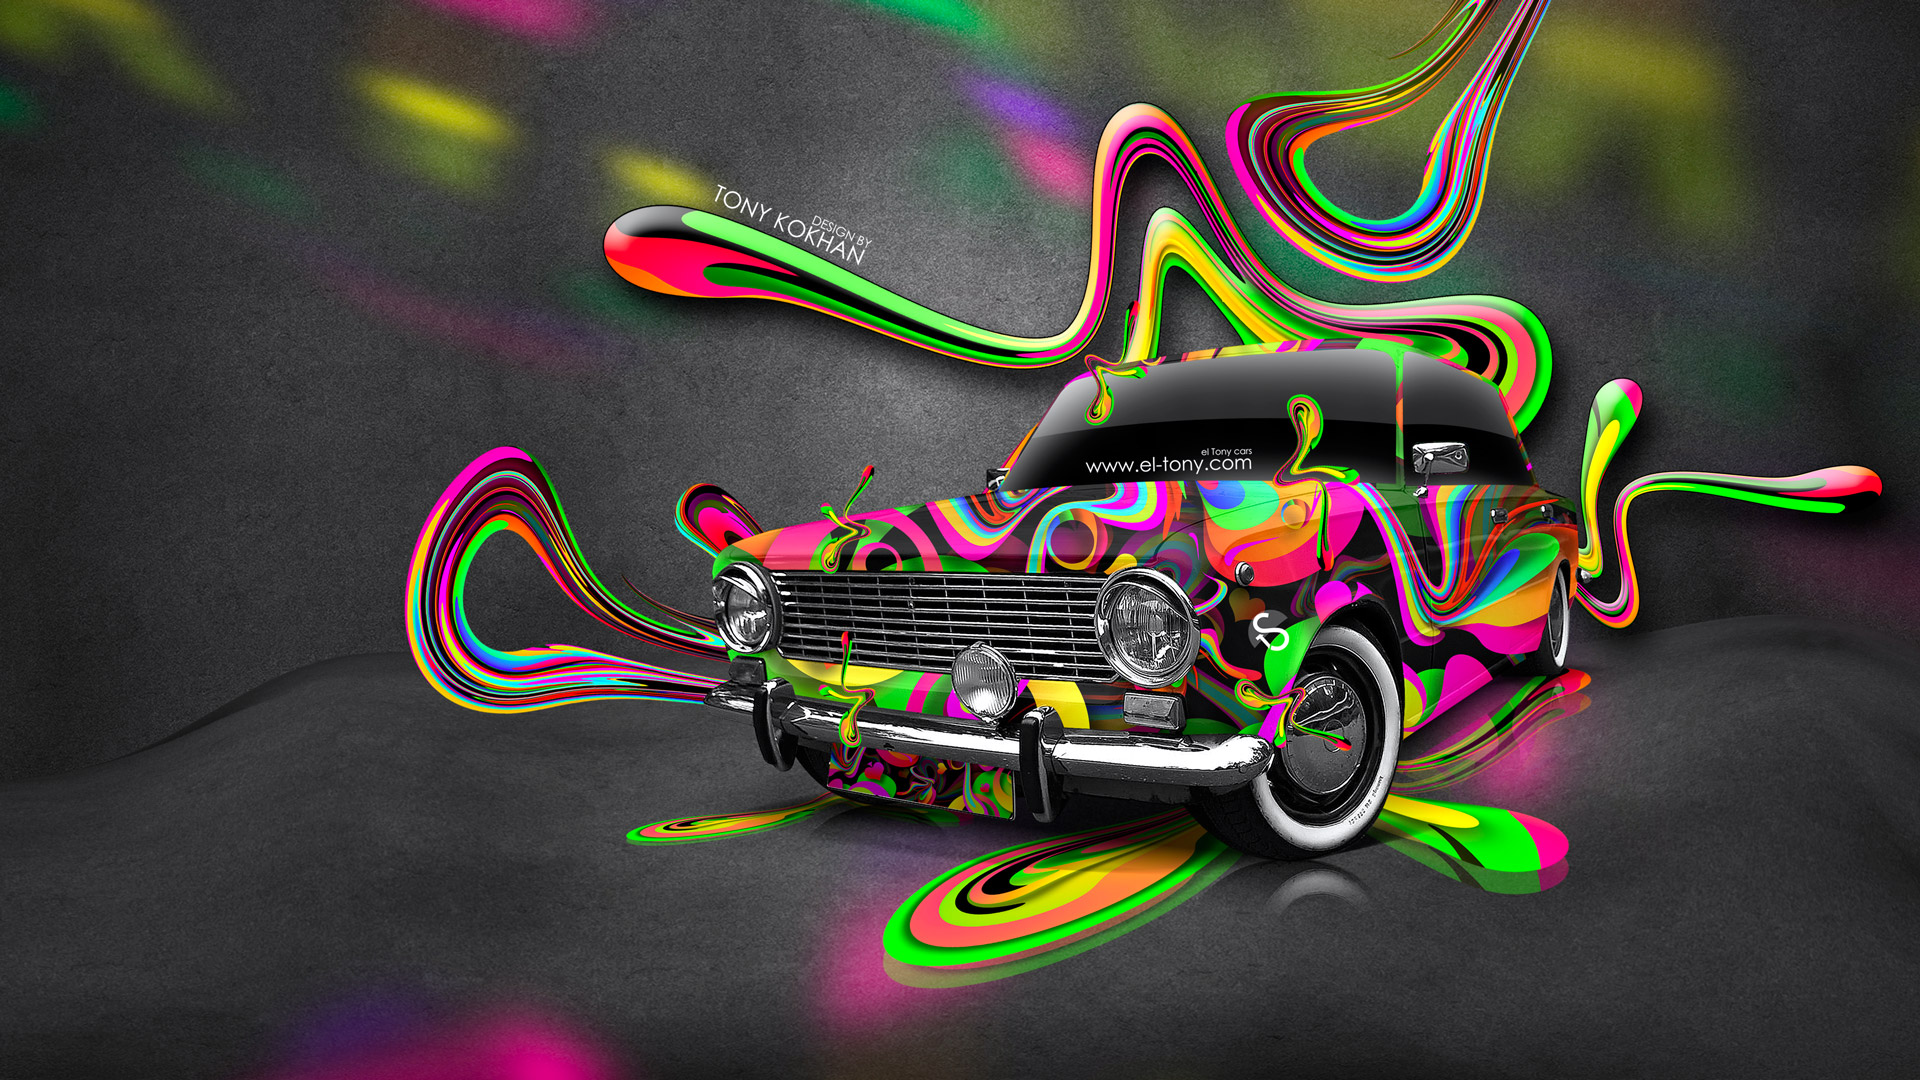 Etonnant Vaz 2101 Russian Super Plastic Abstract Car 2014